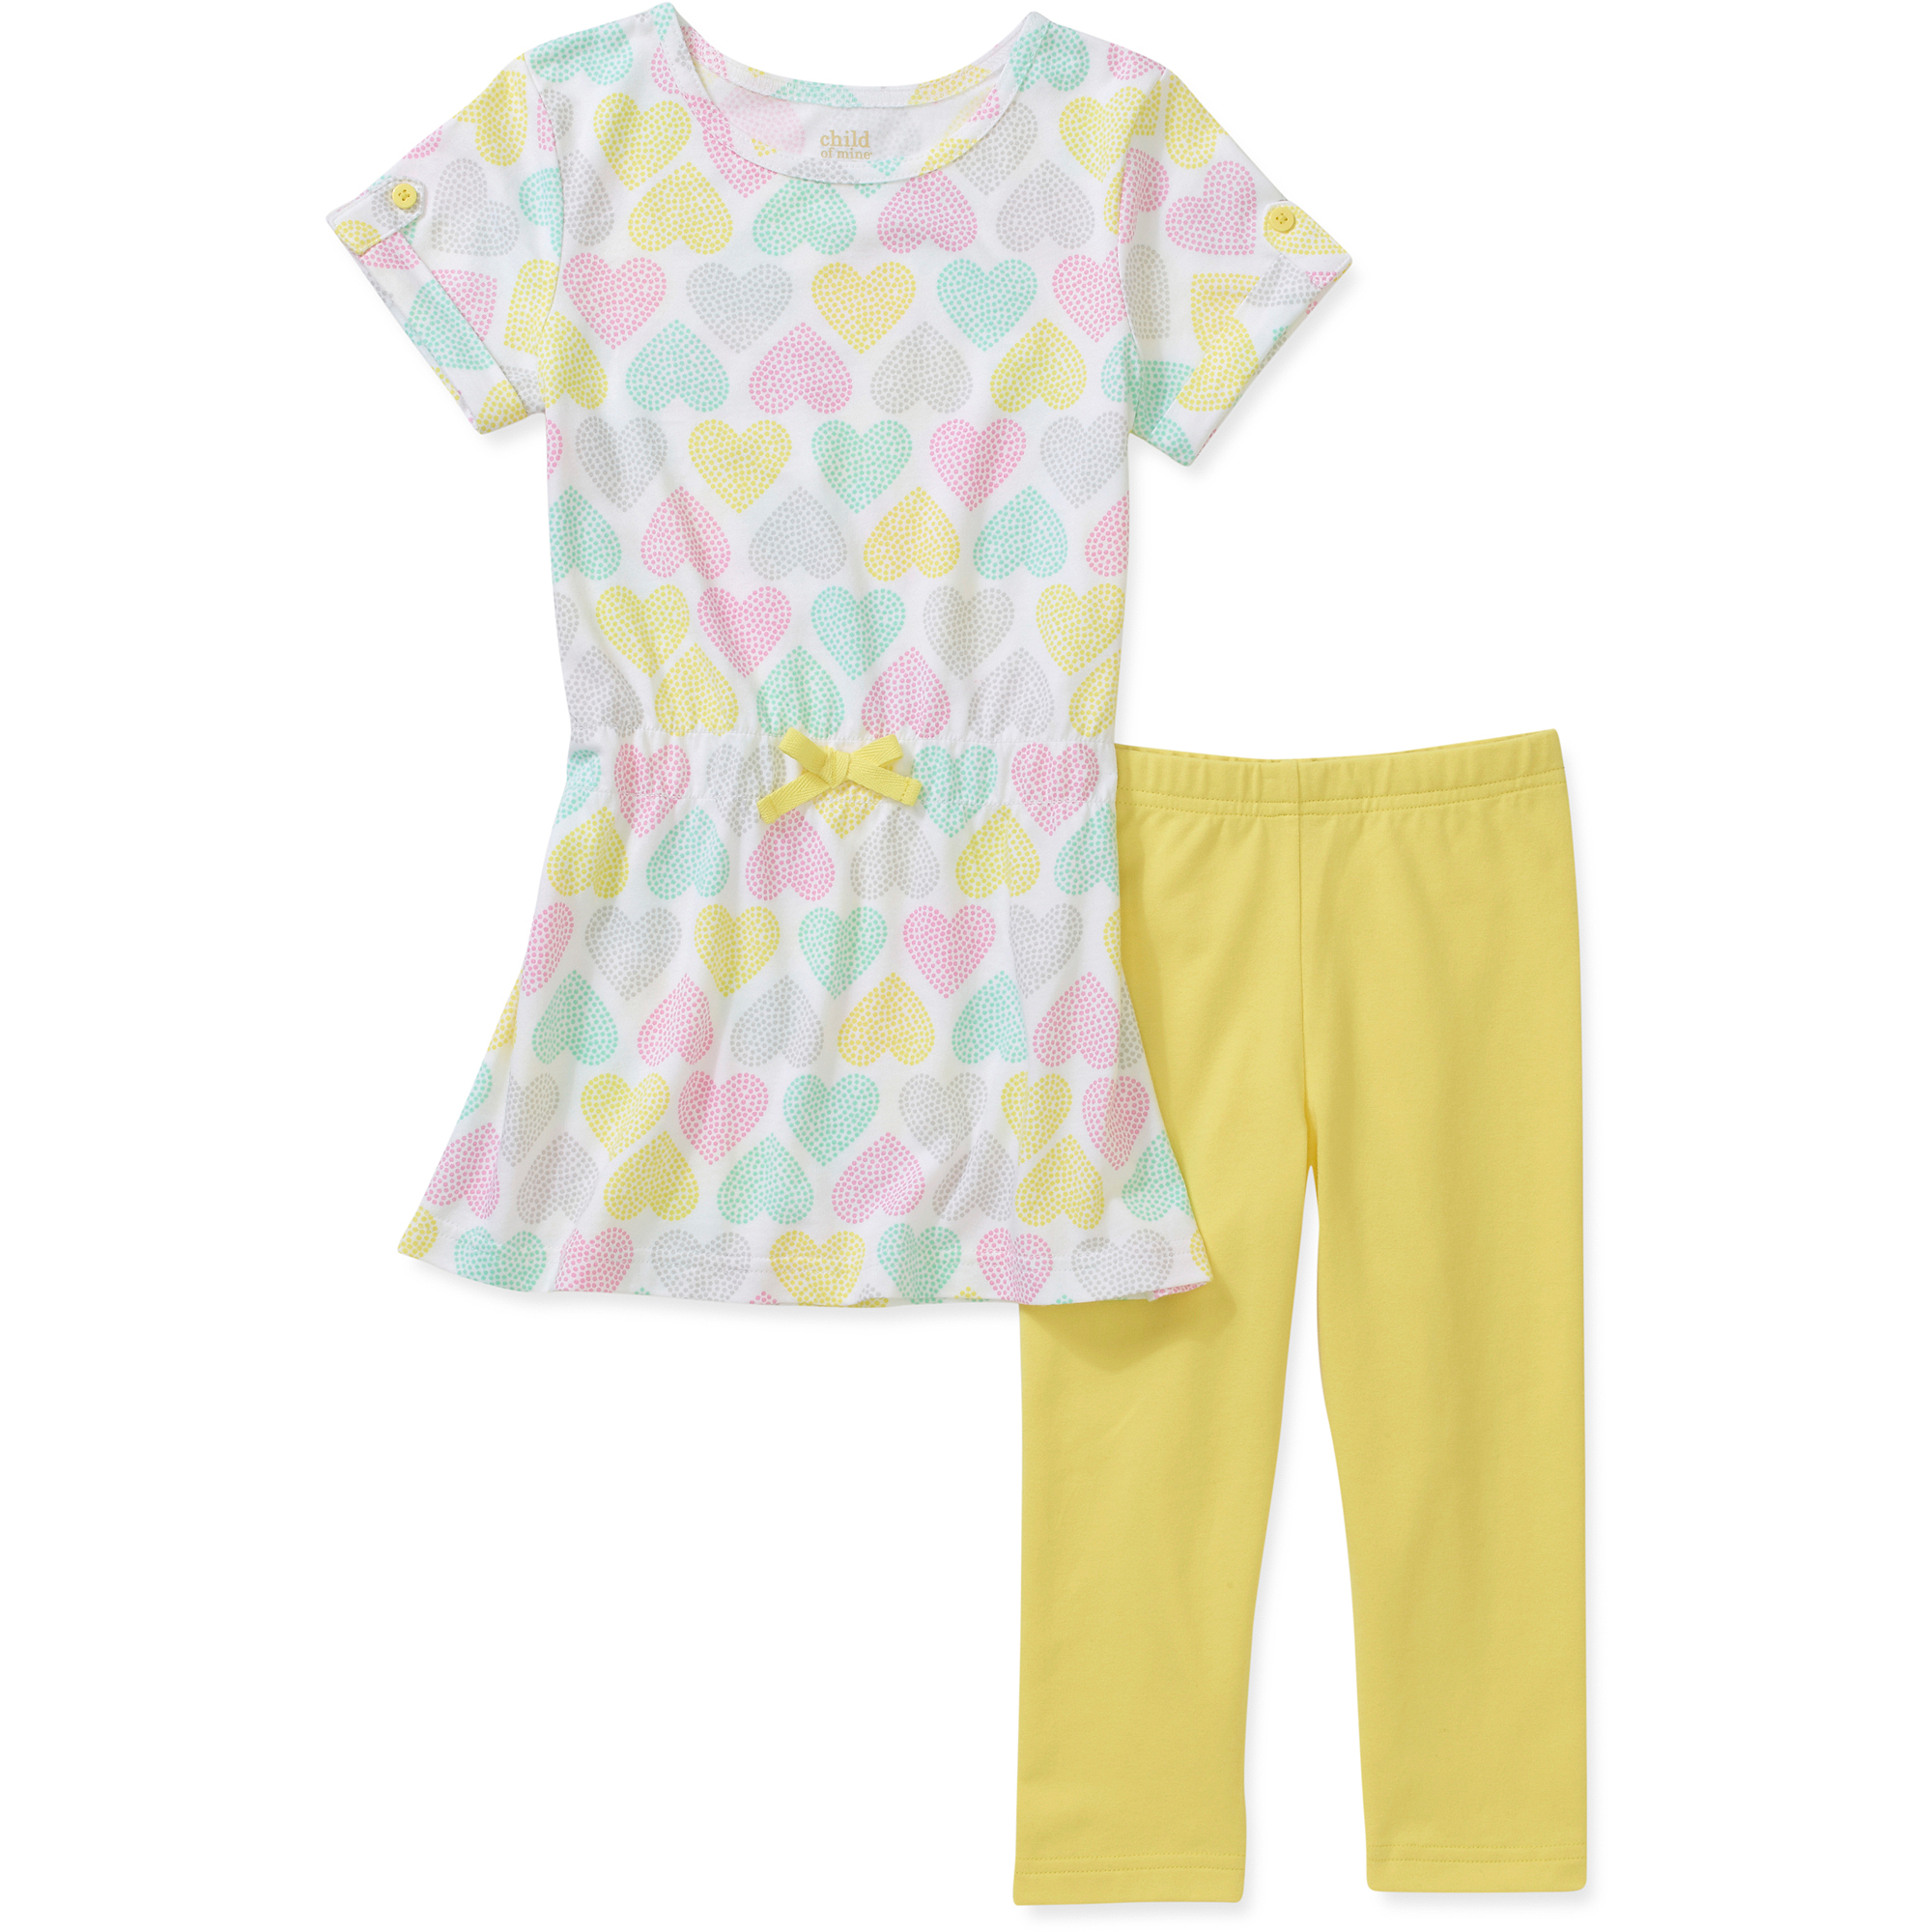 Child of Mine by Carter's Girls' 2 Piece Outfit Set